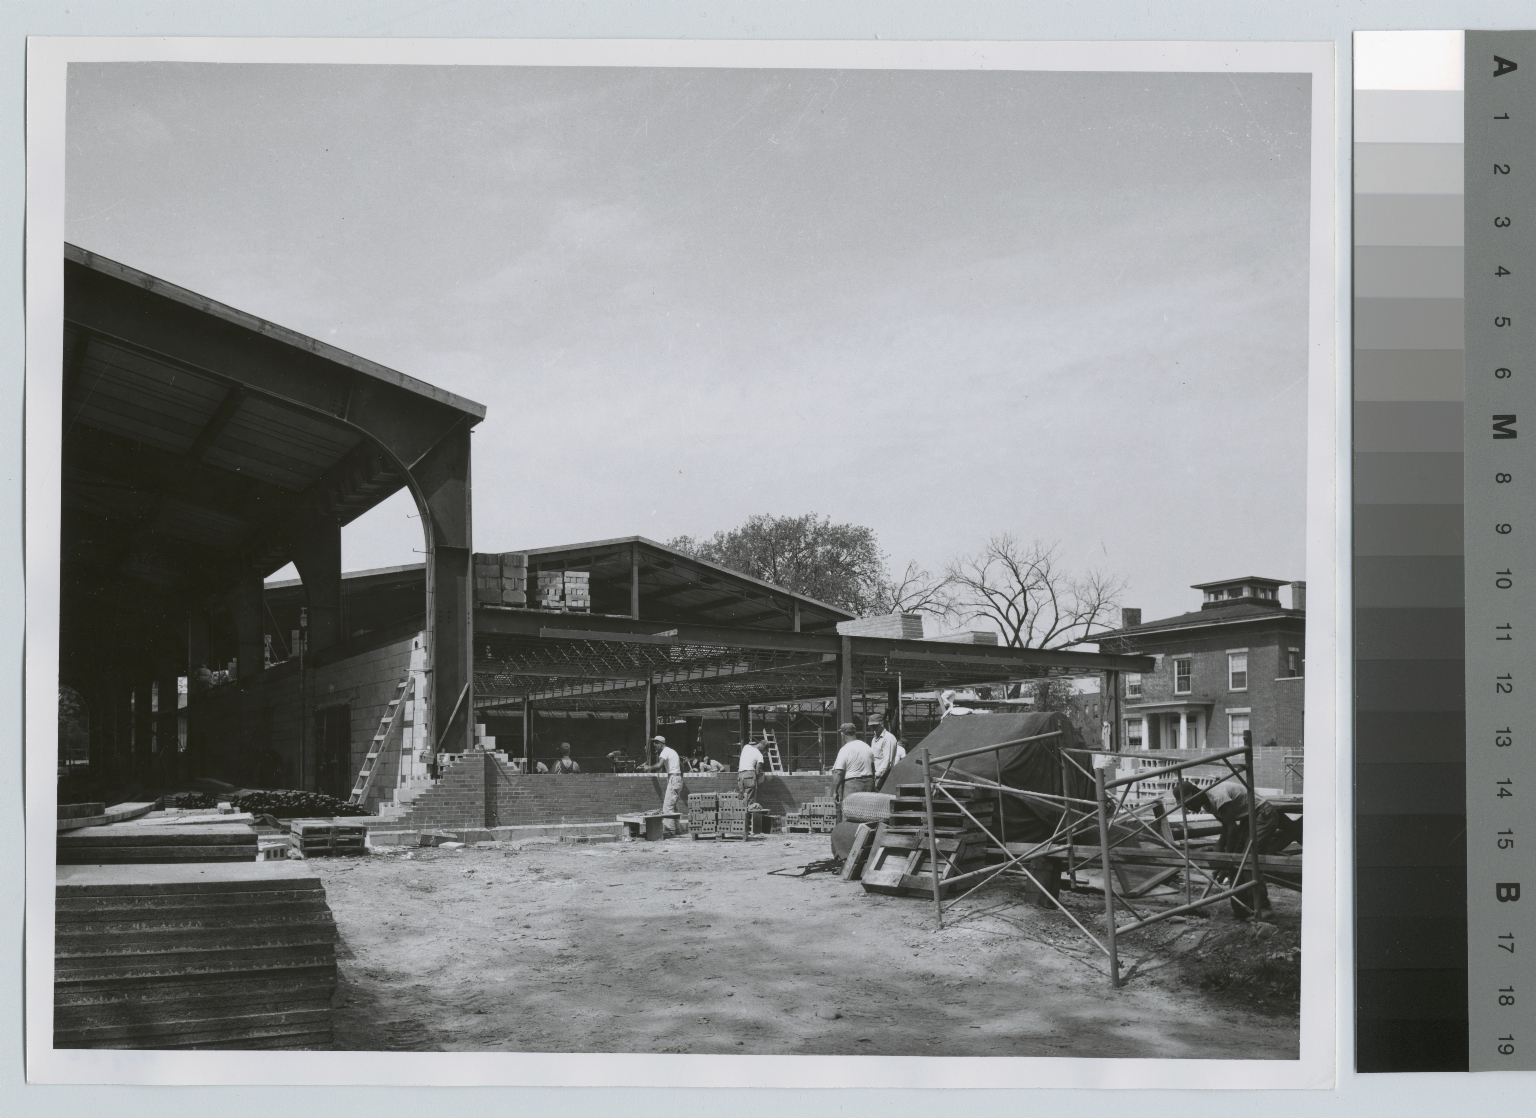 Construction of RIT's gymnasium and ice arena on the downtown Rochester NY campus, Ritter-Clark Memorial Building and Ice Arena, Rochester Institute of Technology